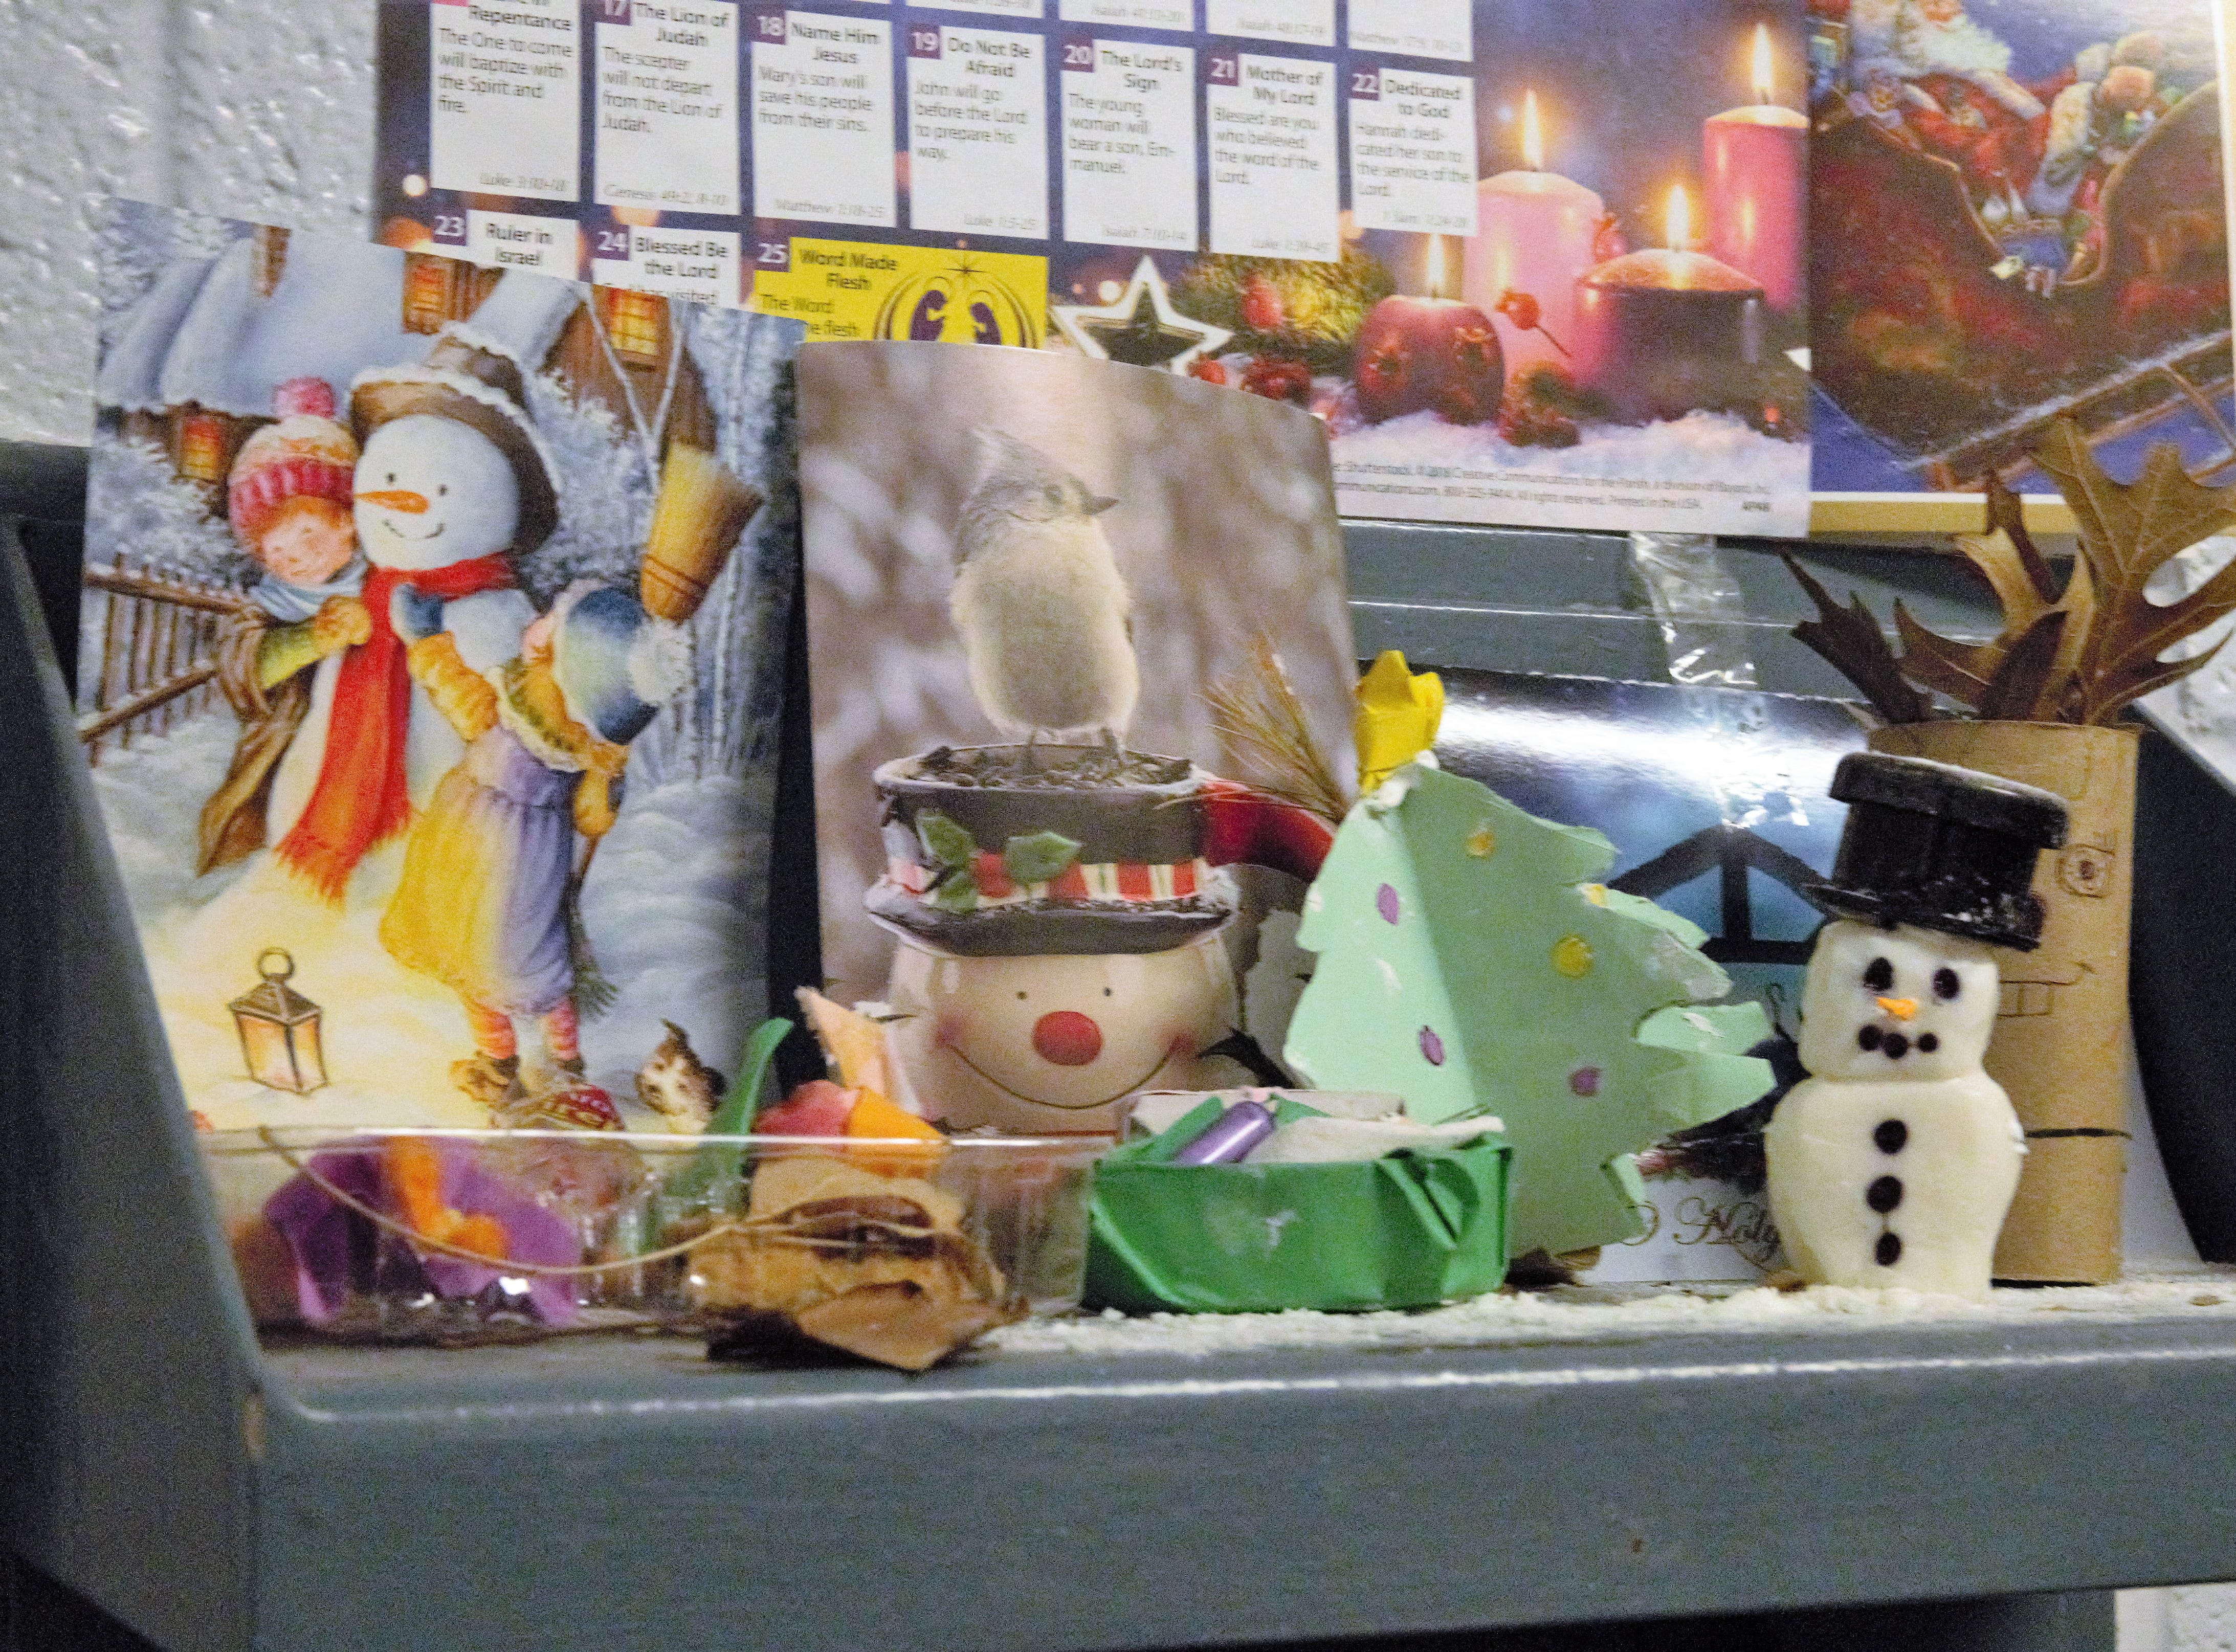 Inmates at the Doña Ana County Detention Center crafted a Christmas-themed shelf, on display Tuesday, Dec. 25, 2018.